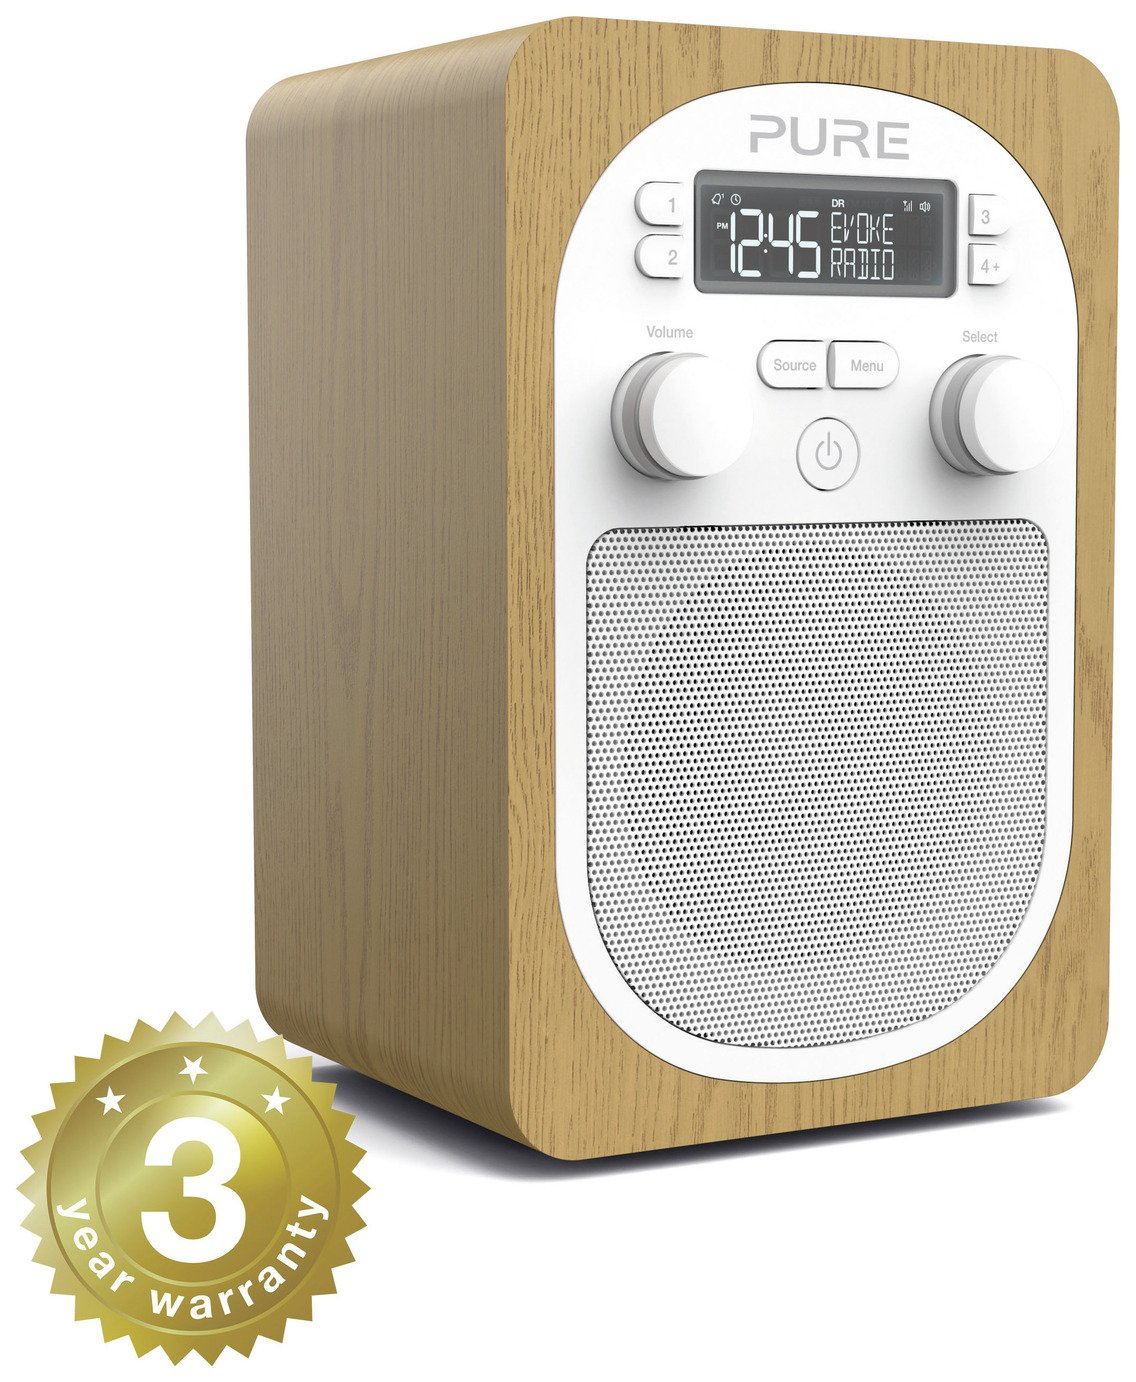 Pure Evoke H2 Portable DAB+/FM Radio with Alarm - Oak